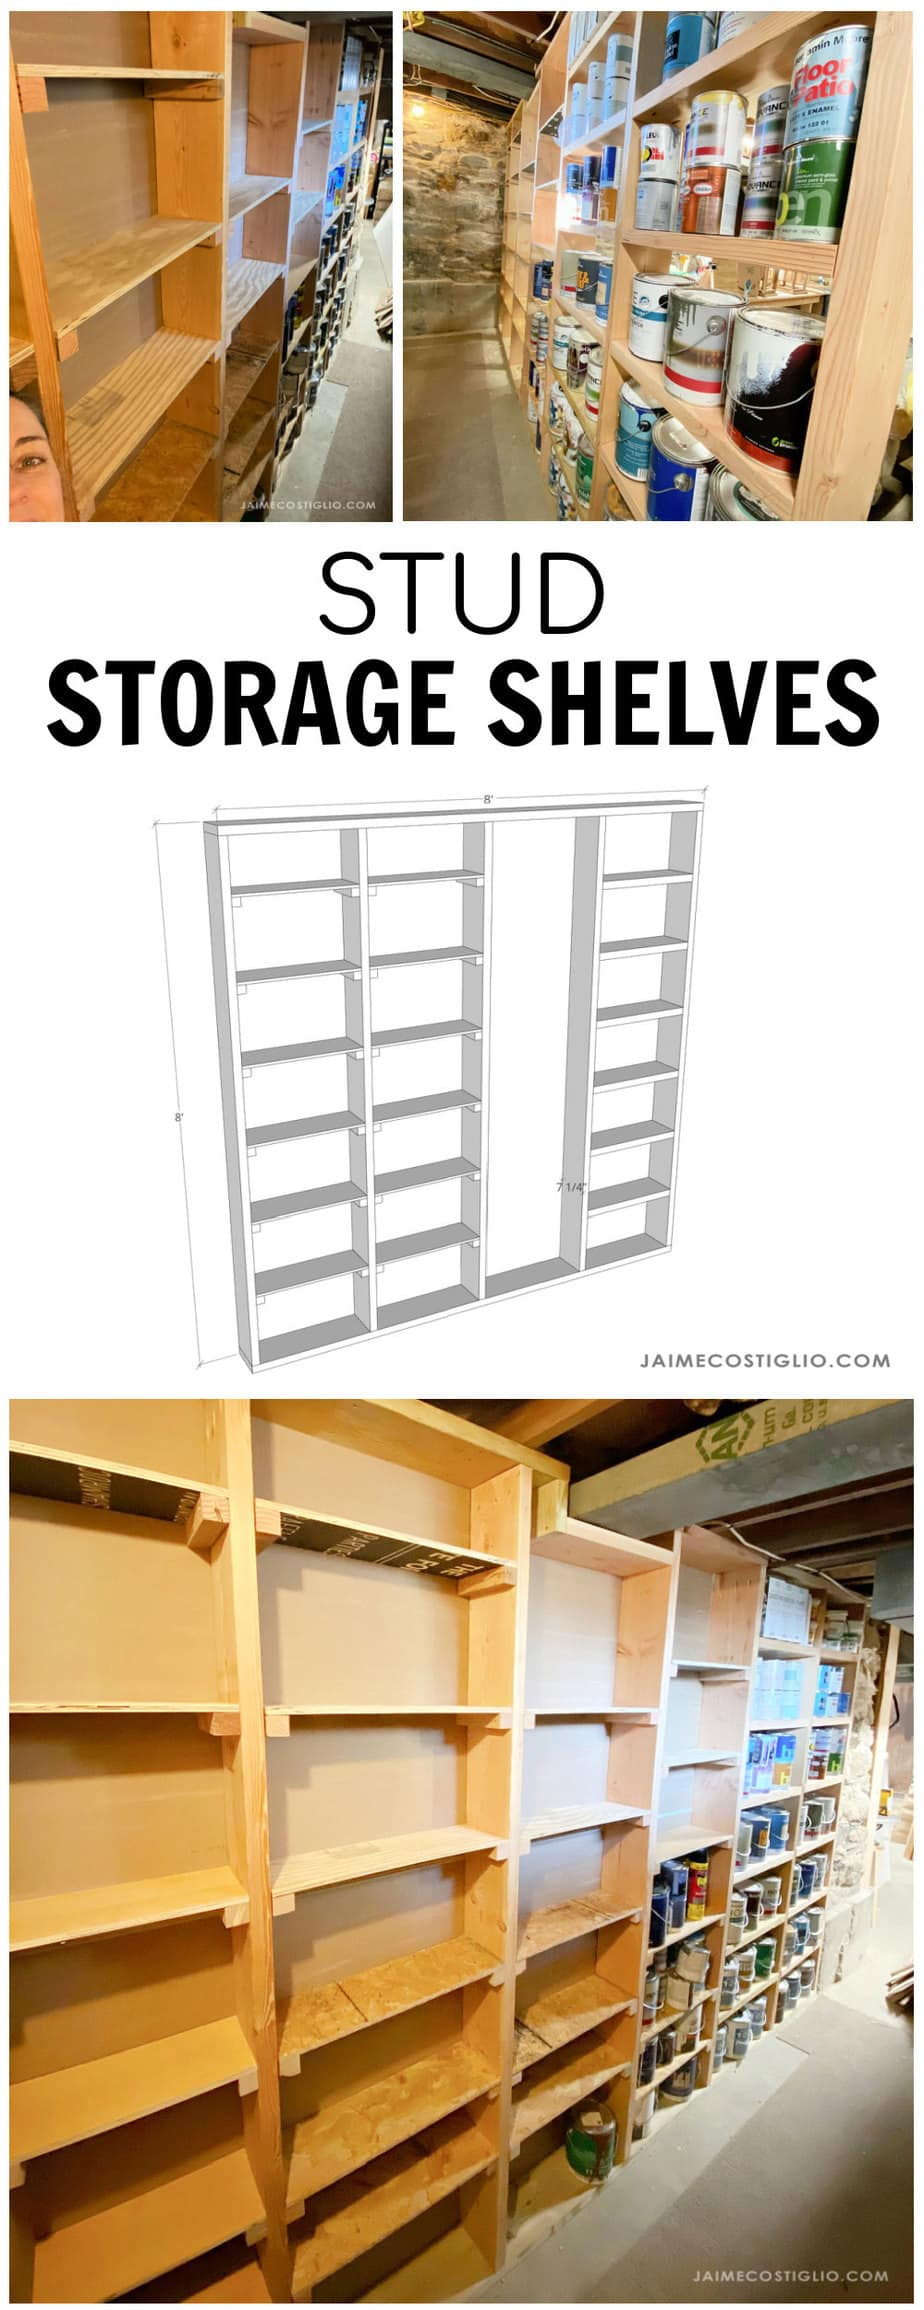 diy storage shelves in between studs